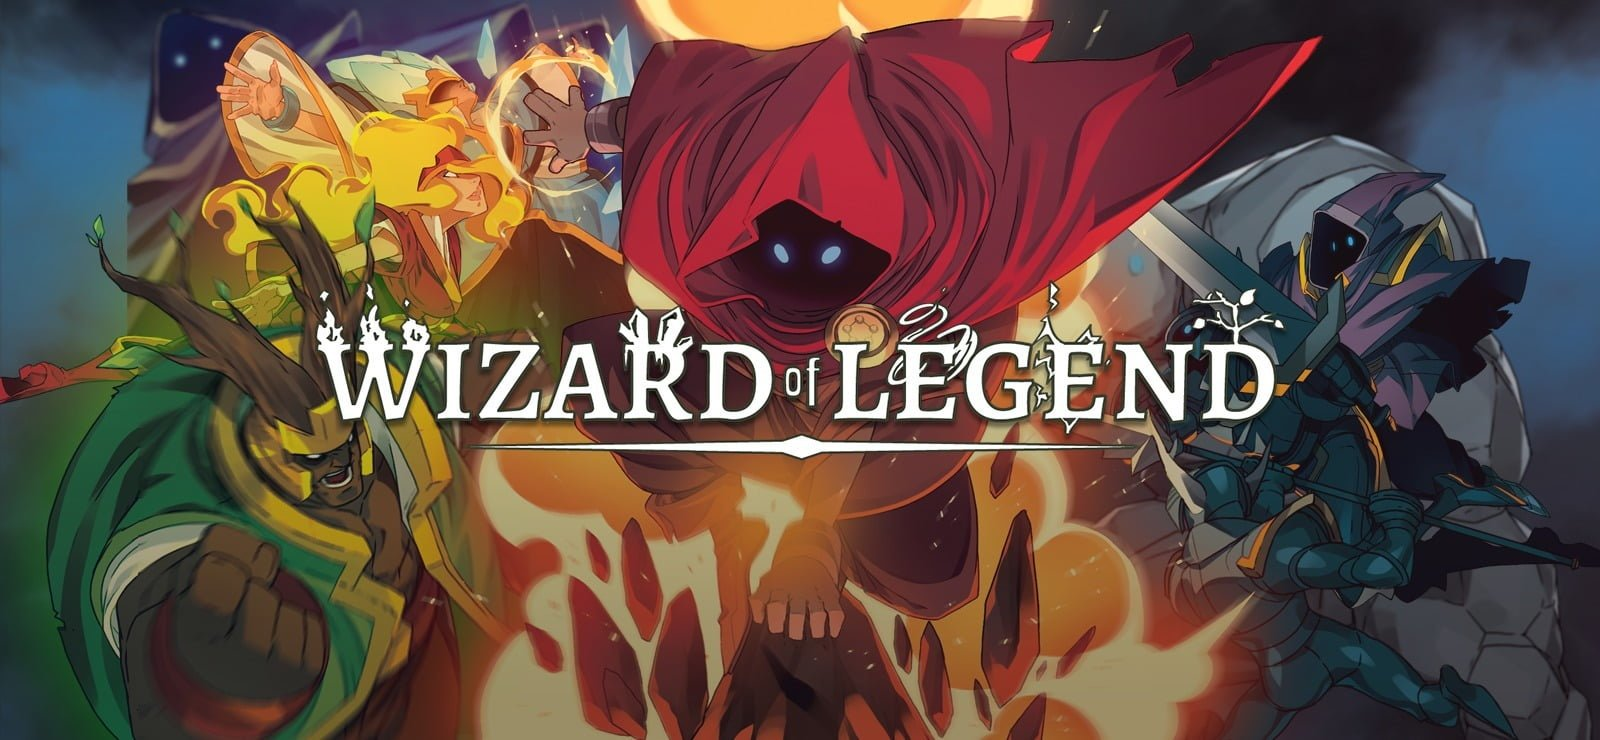 Wizard of Legend download